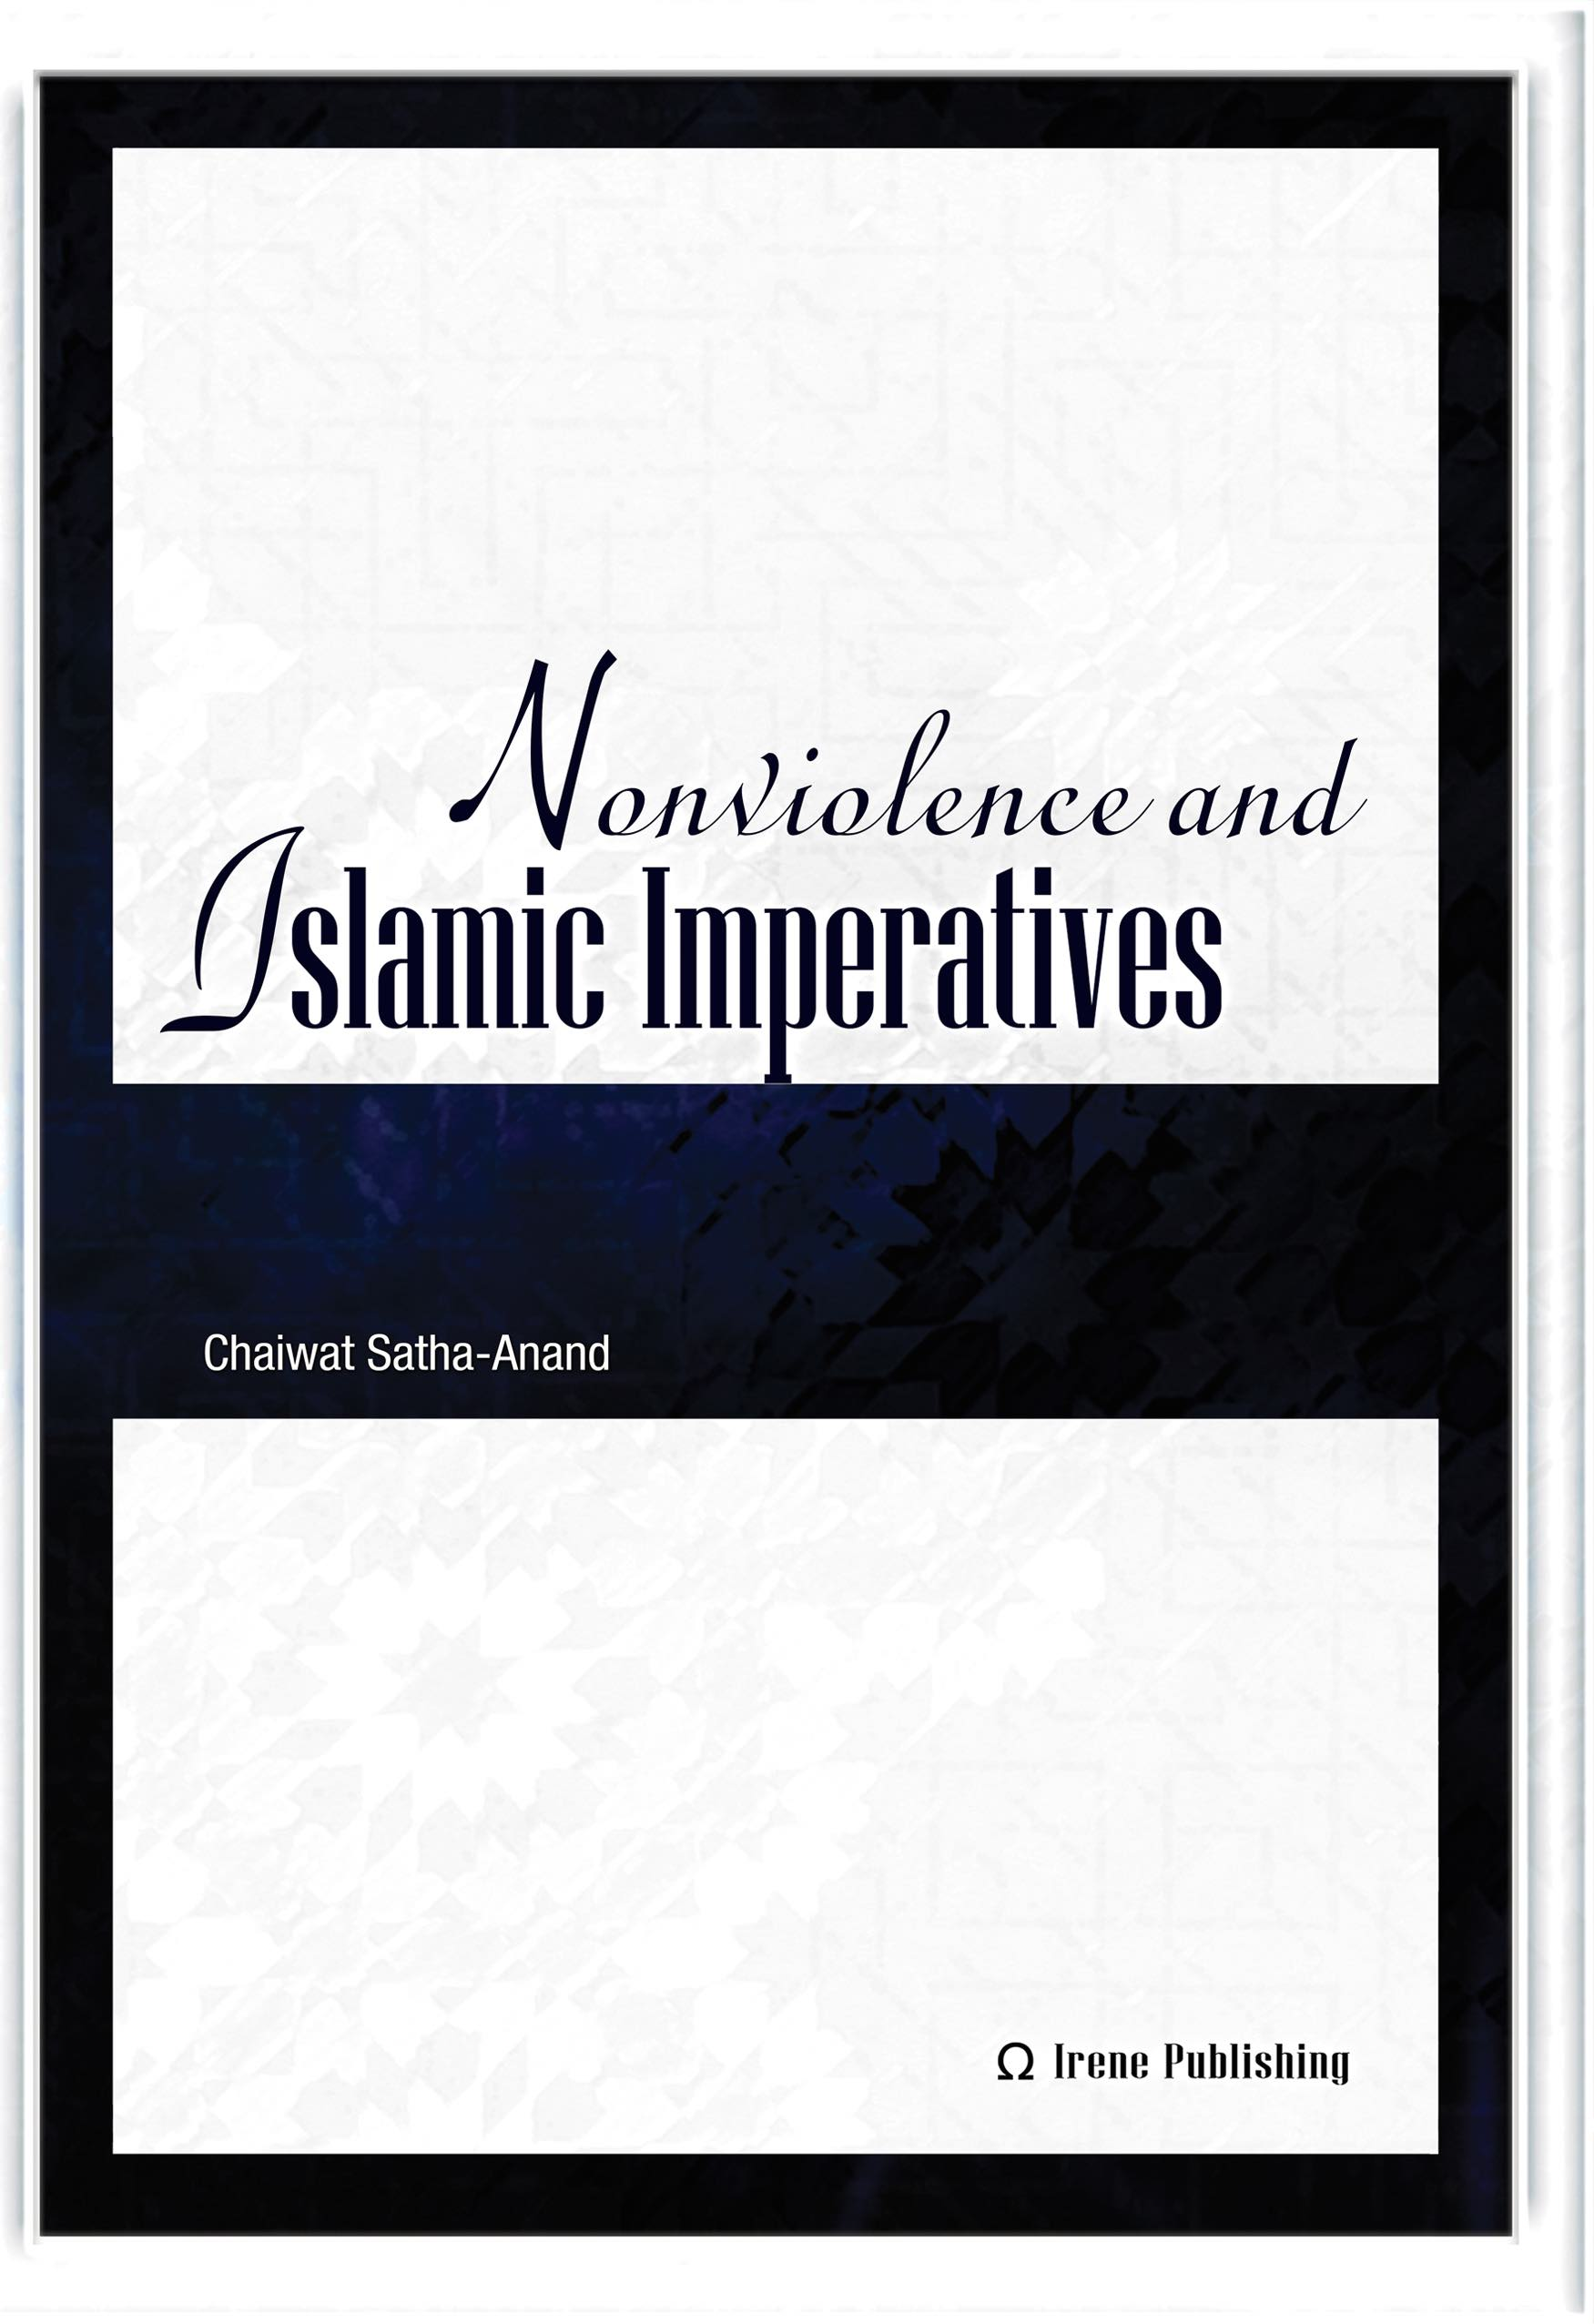 Nonviolence and Islamic Imperatives (e-book)